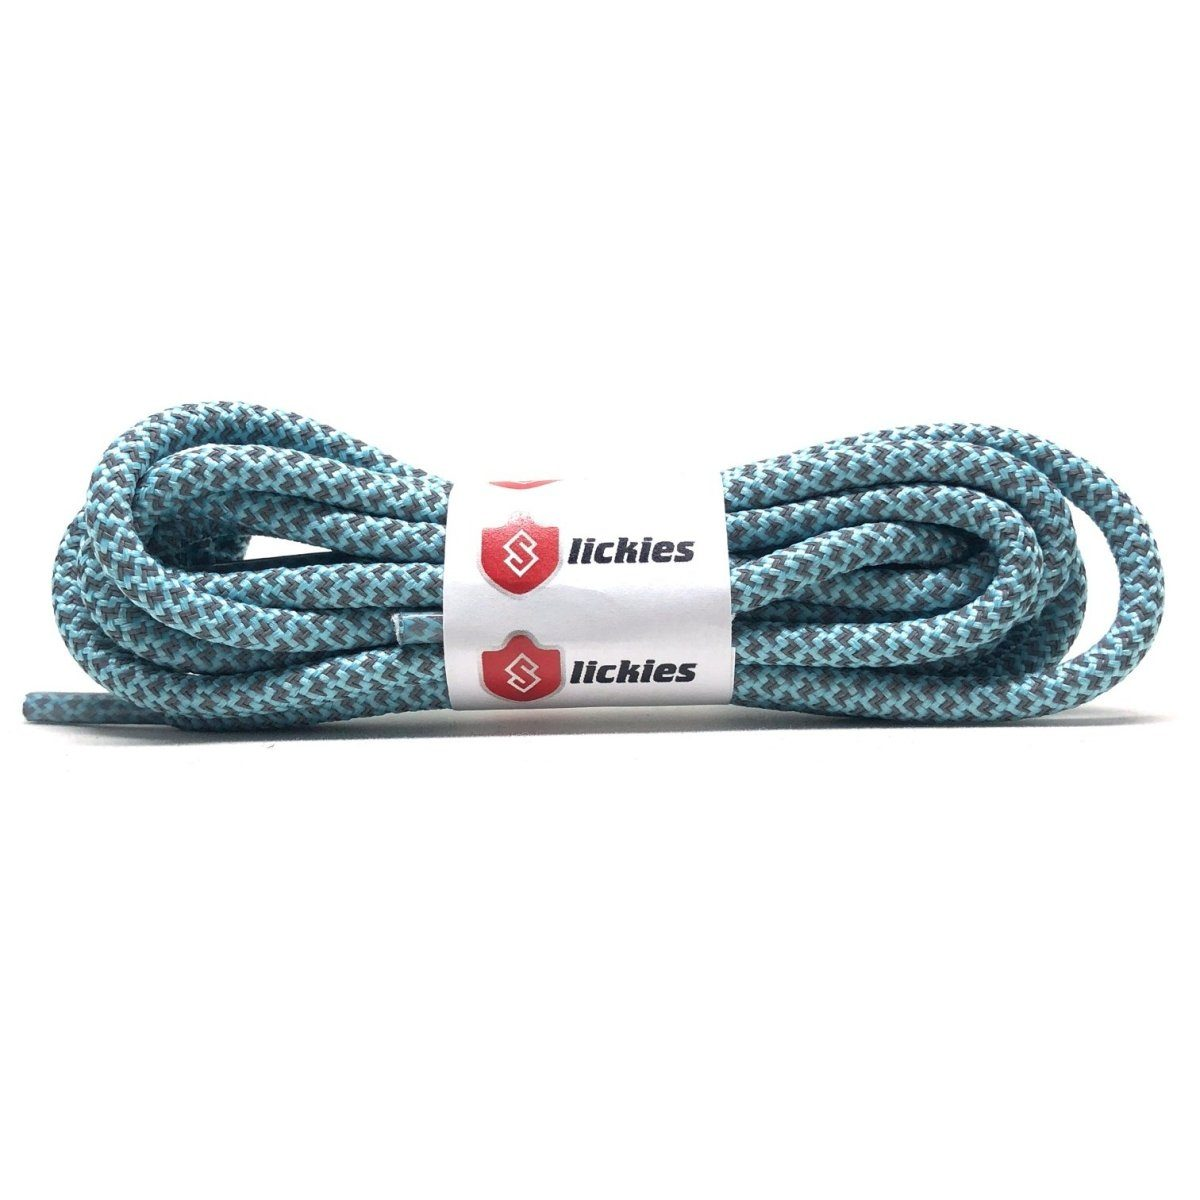 3M Rope - 3M Reflective Rope Laces - Static Mint